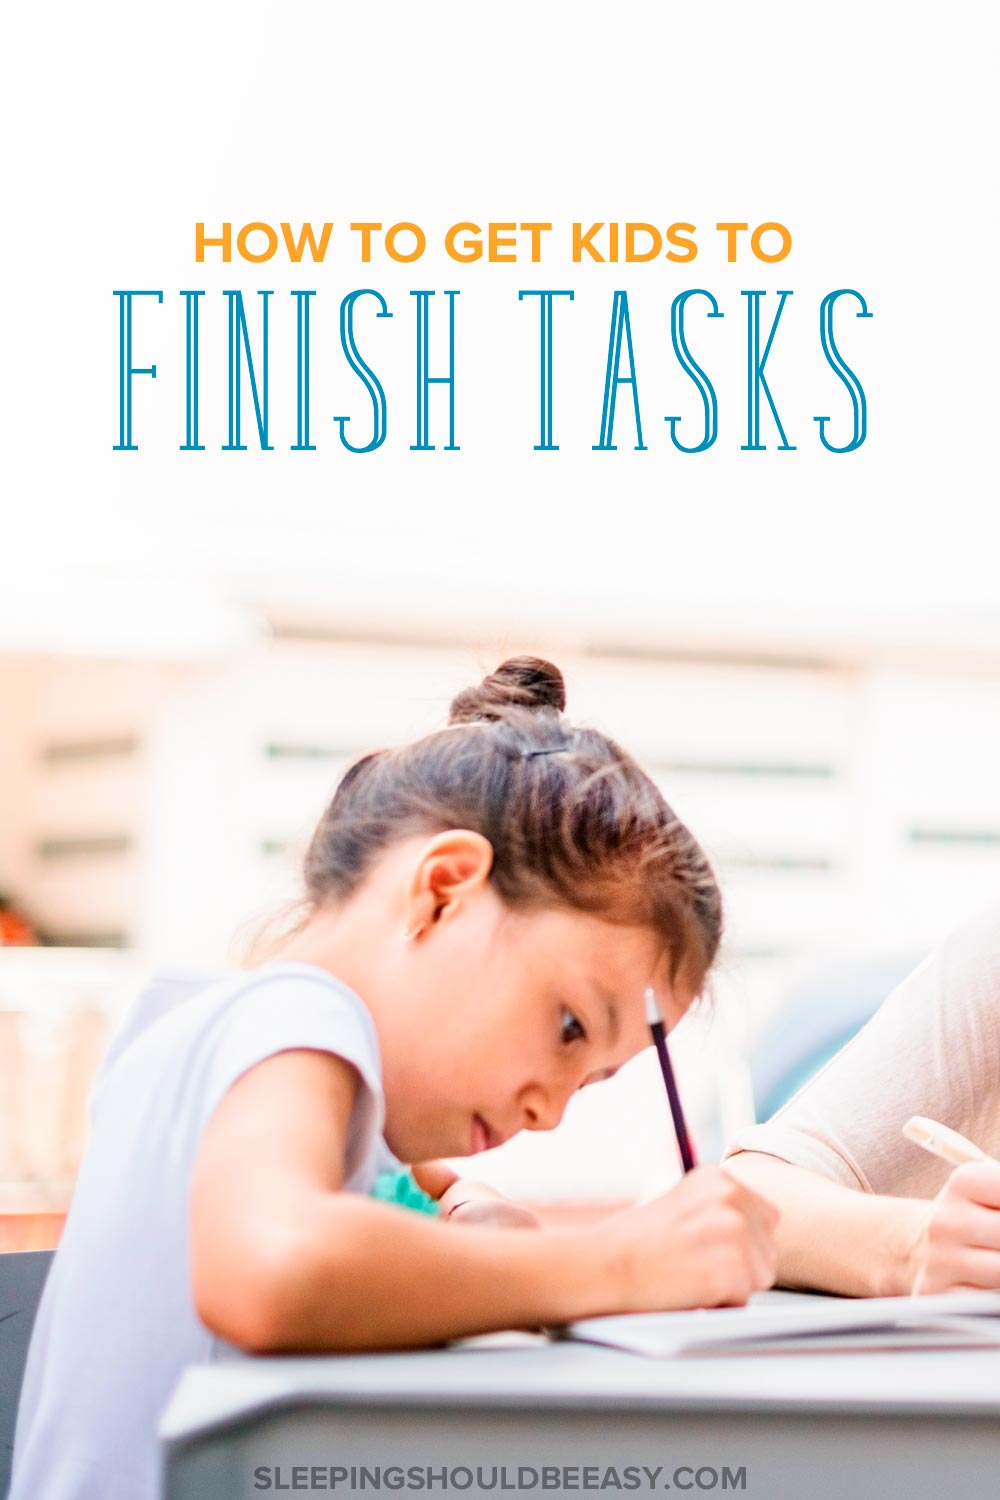 Can't get kids to finish tasks like chores and school projects? Learn how motivating kids can get them to follow through with their responsibilities.